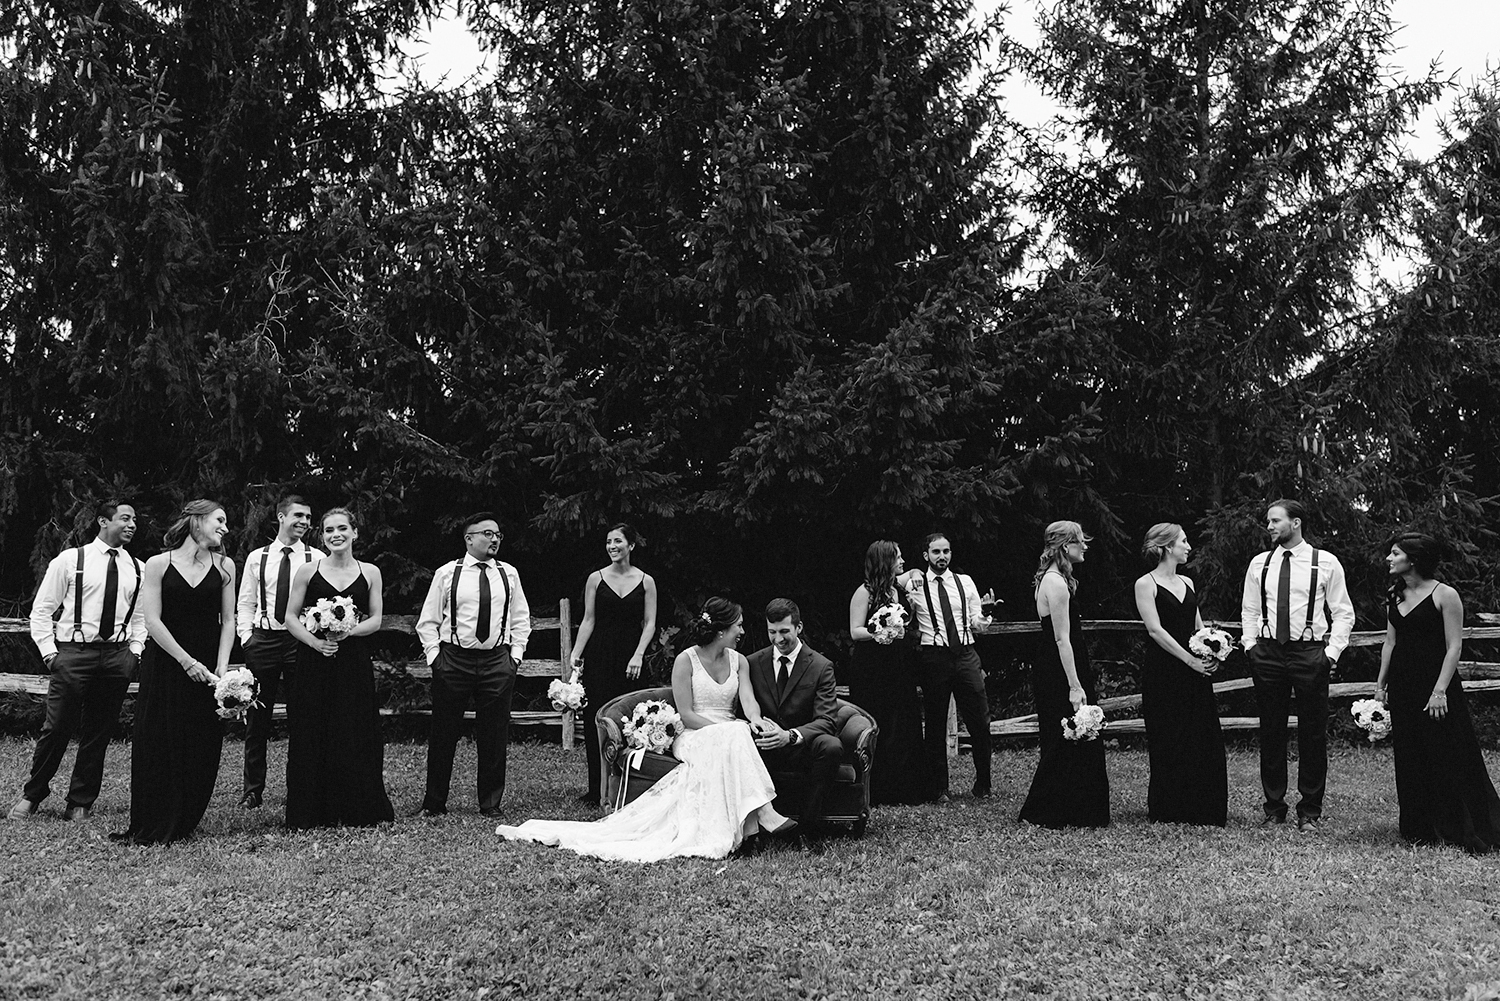 couch-candid-bridal-party-bridesmaids-in-black-dresses-candid-fun-real-moments-at-bellamere-winery-toronto's-best-wedding-photographers-candid-documentary-style-photography-london-ontario-winery-wedding-inspiration.jpg